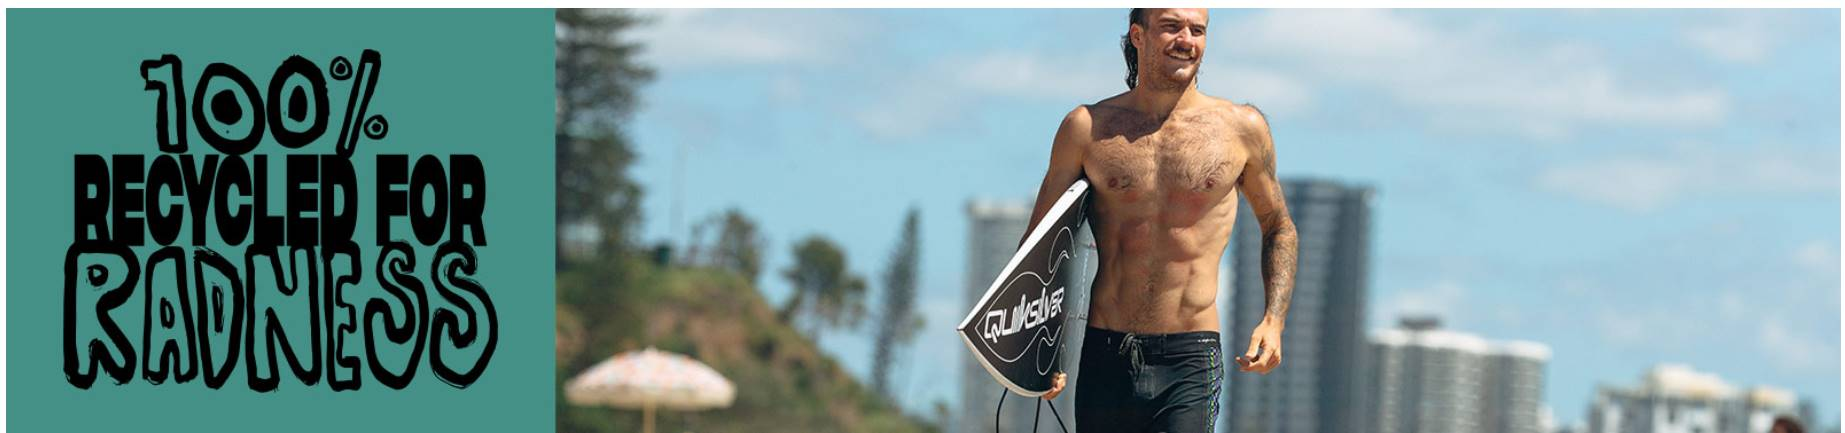 Quiksilver - 100% Recycled Radness boardshorts